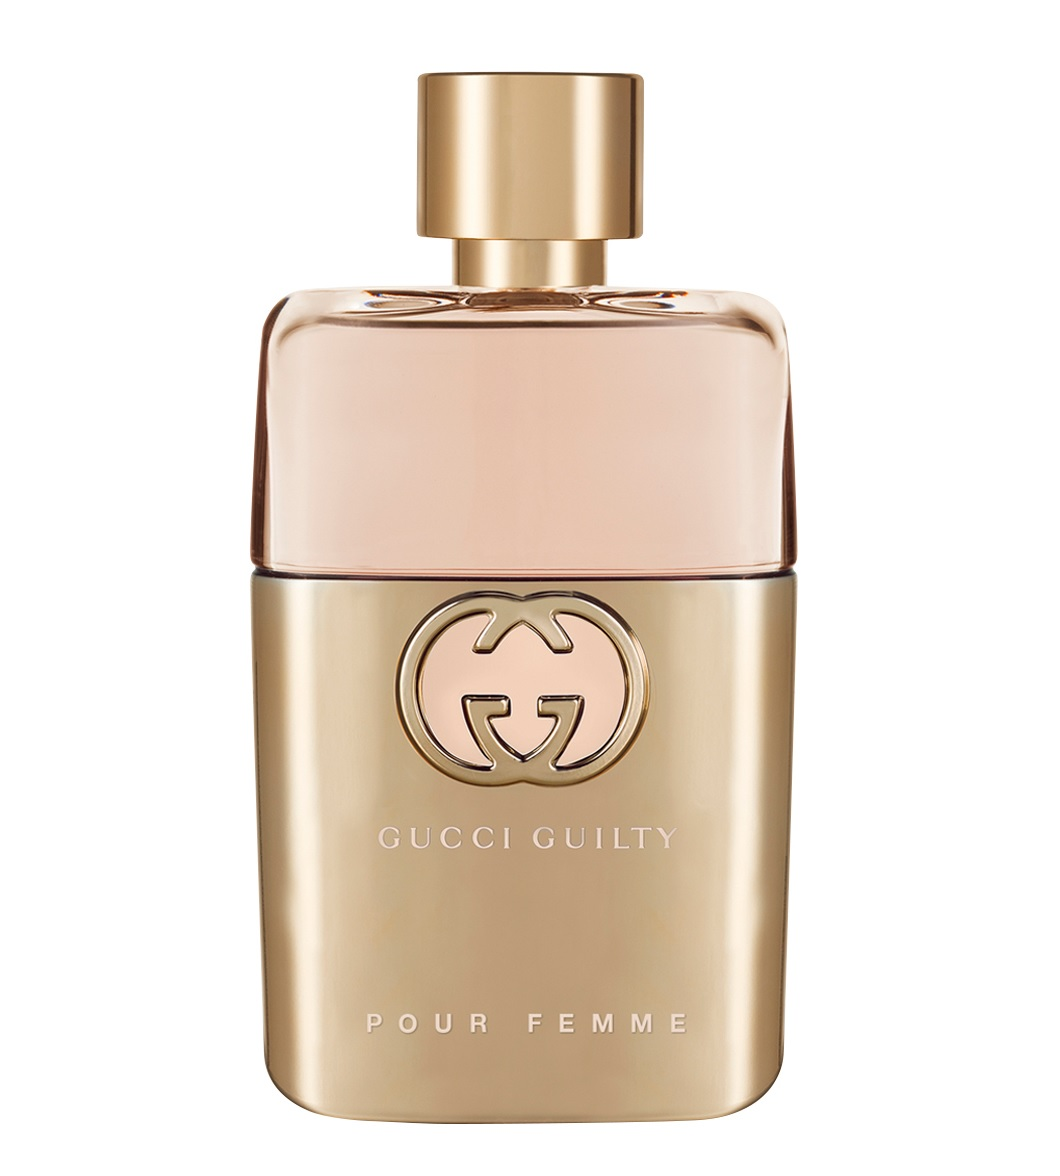 85f907840b7 Gucci Guilty Eau de Parfum Gucci perfume - a new fragrance for women ...